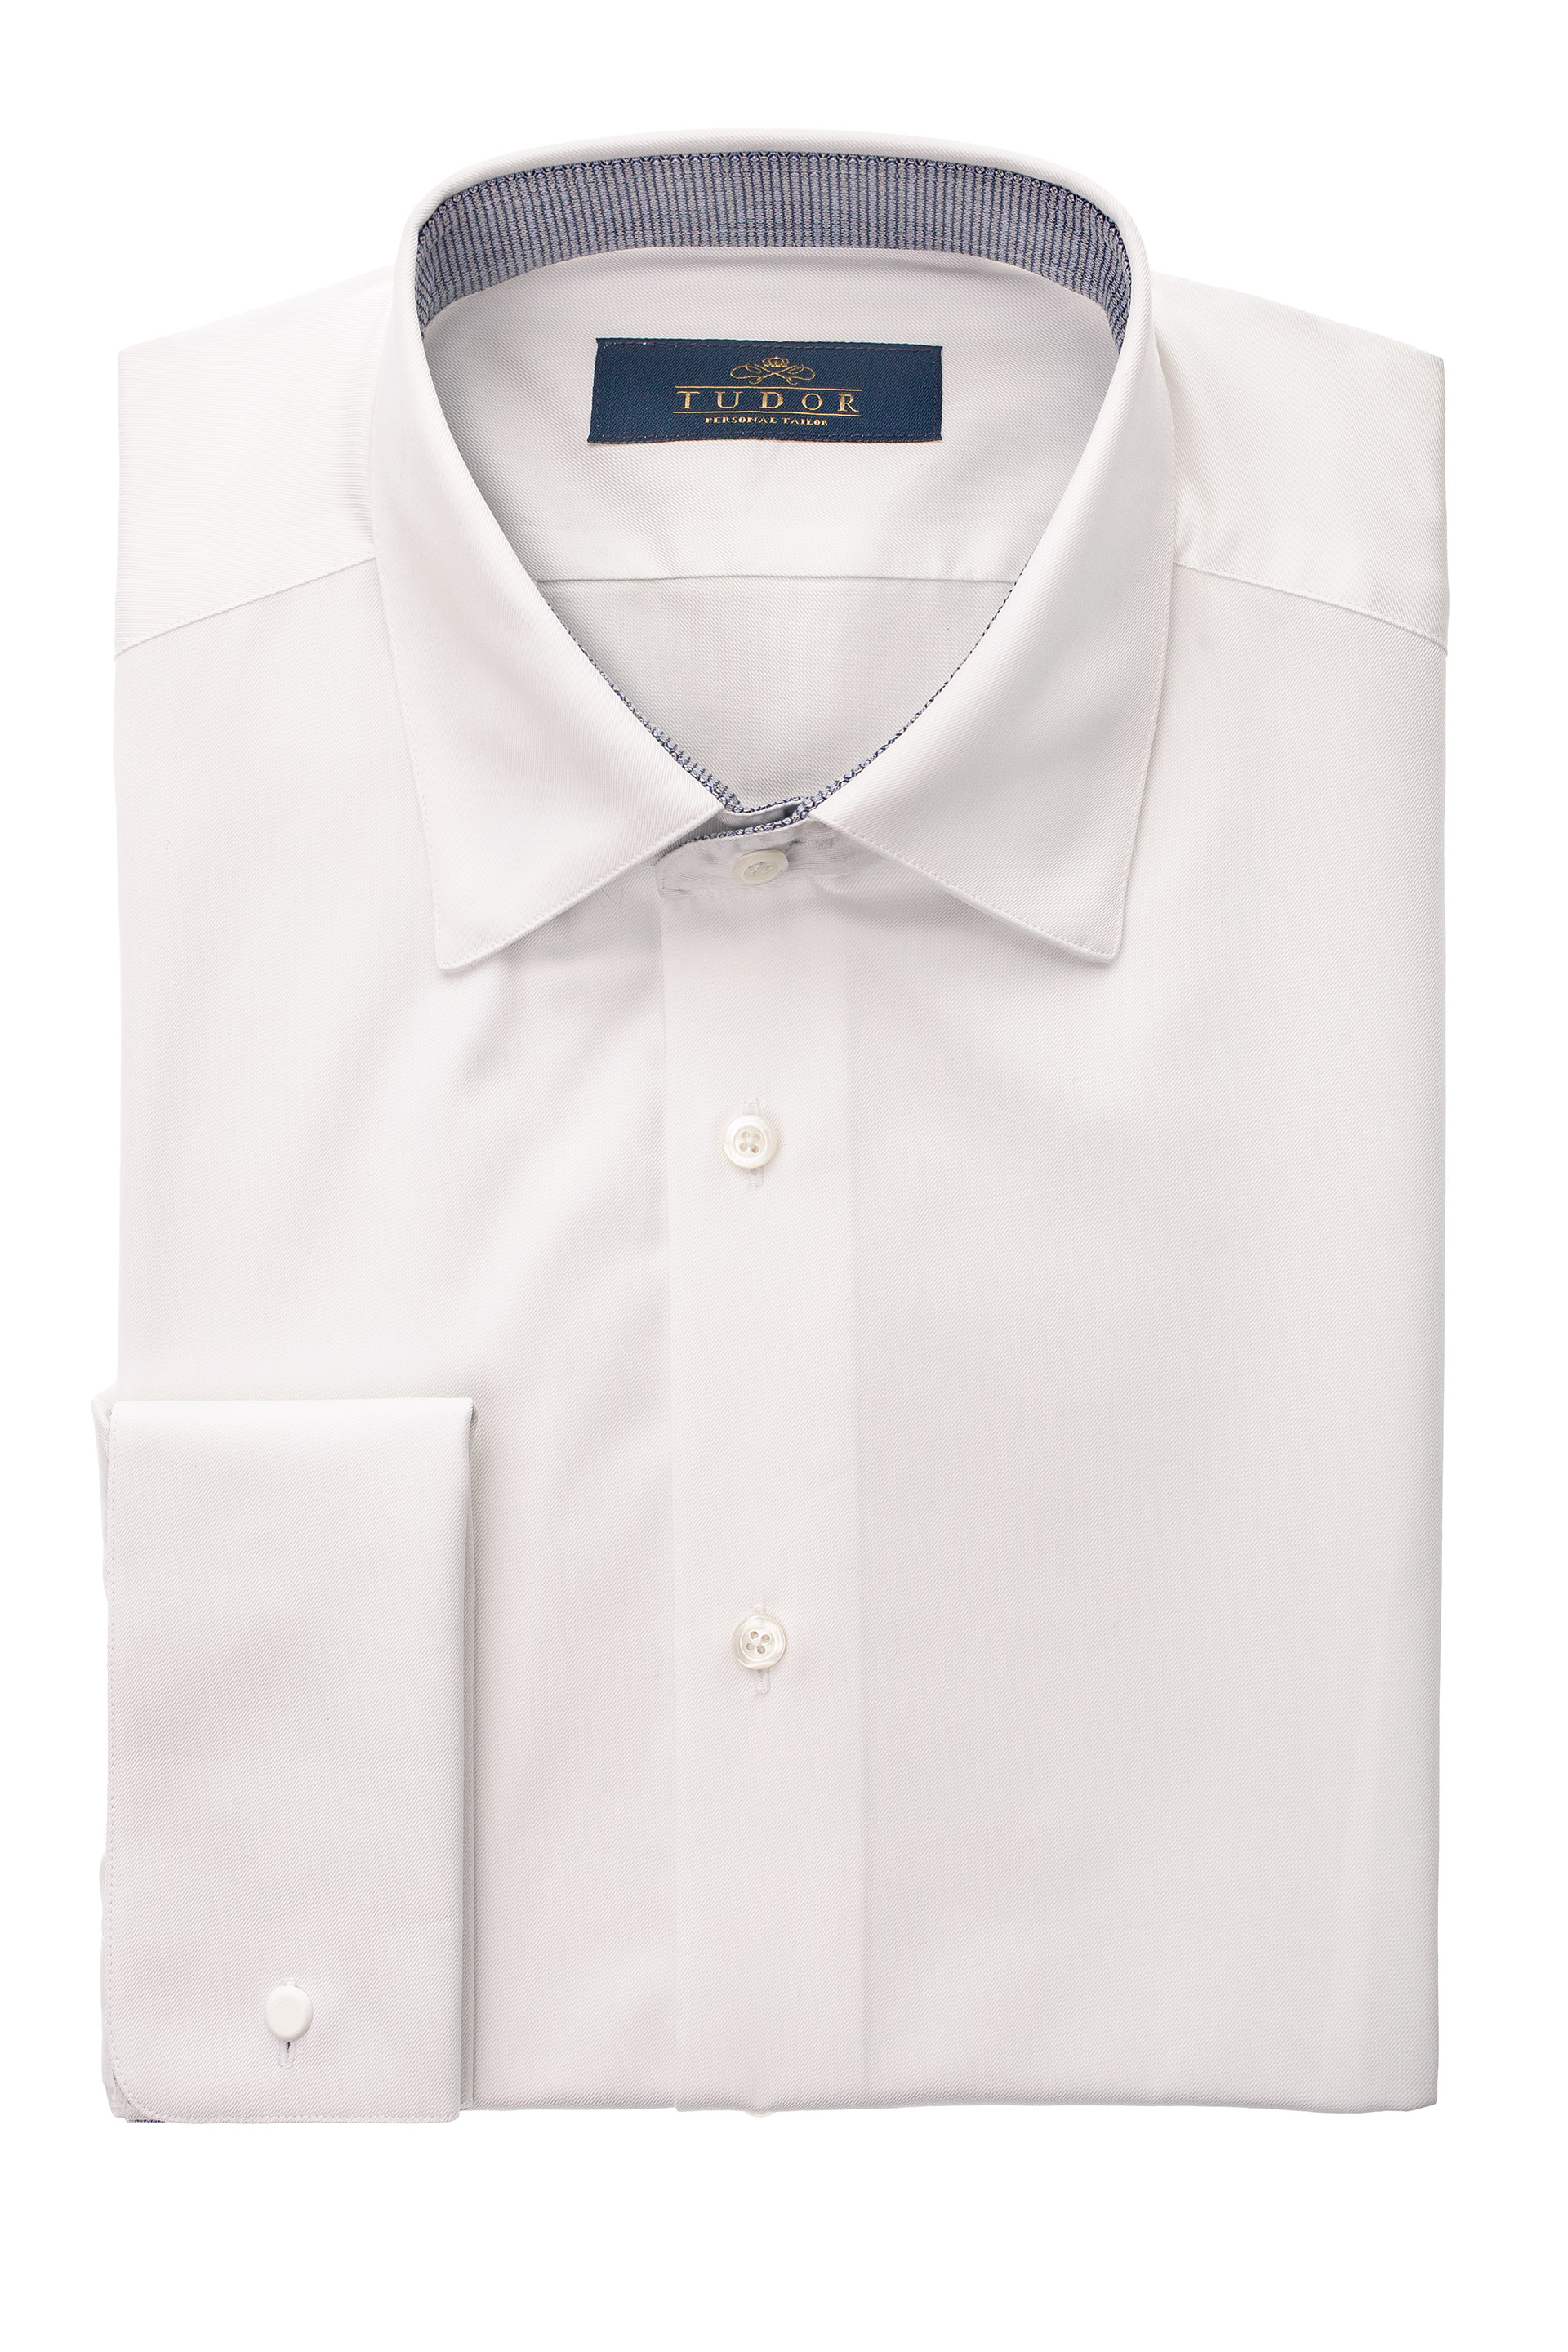 White Shirt With Cufflinks Shirts Suits Custom Suits